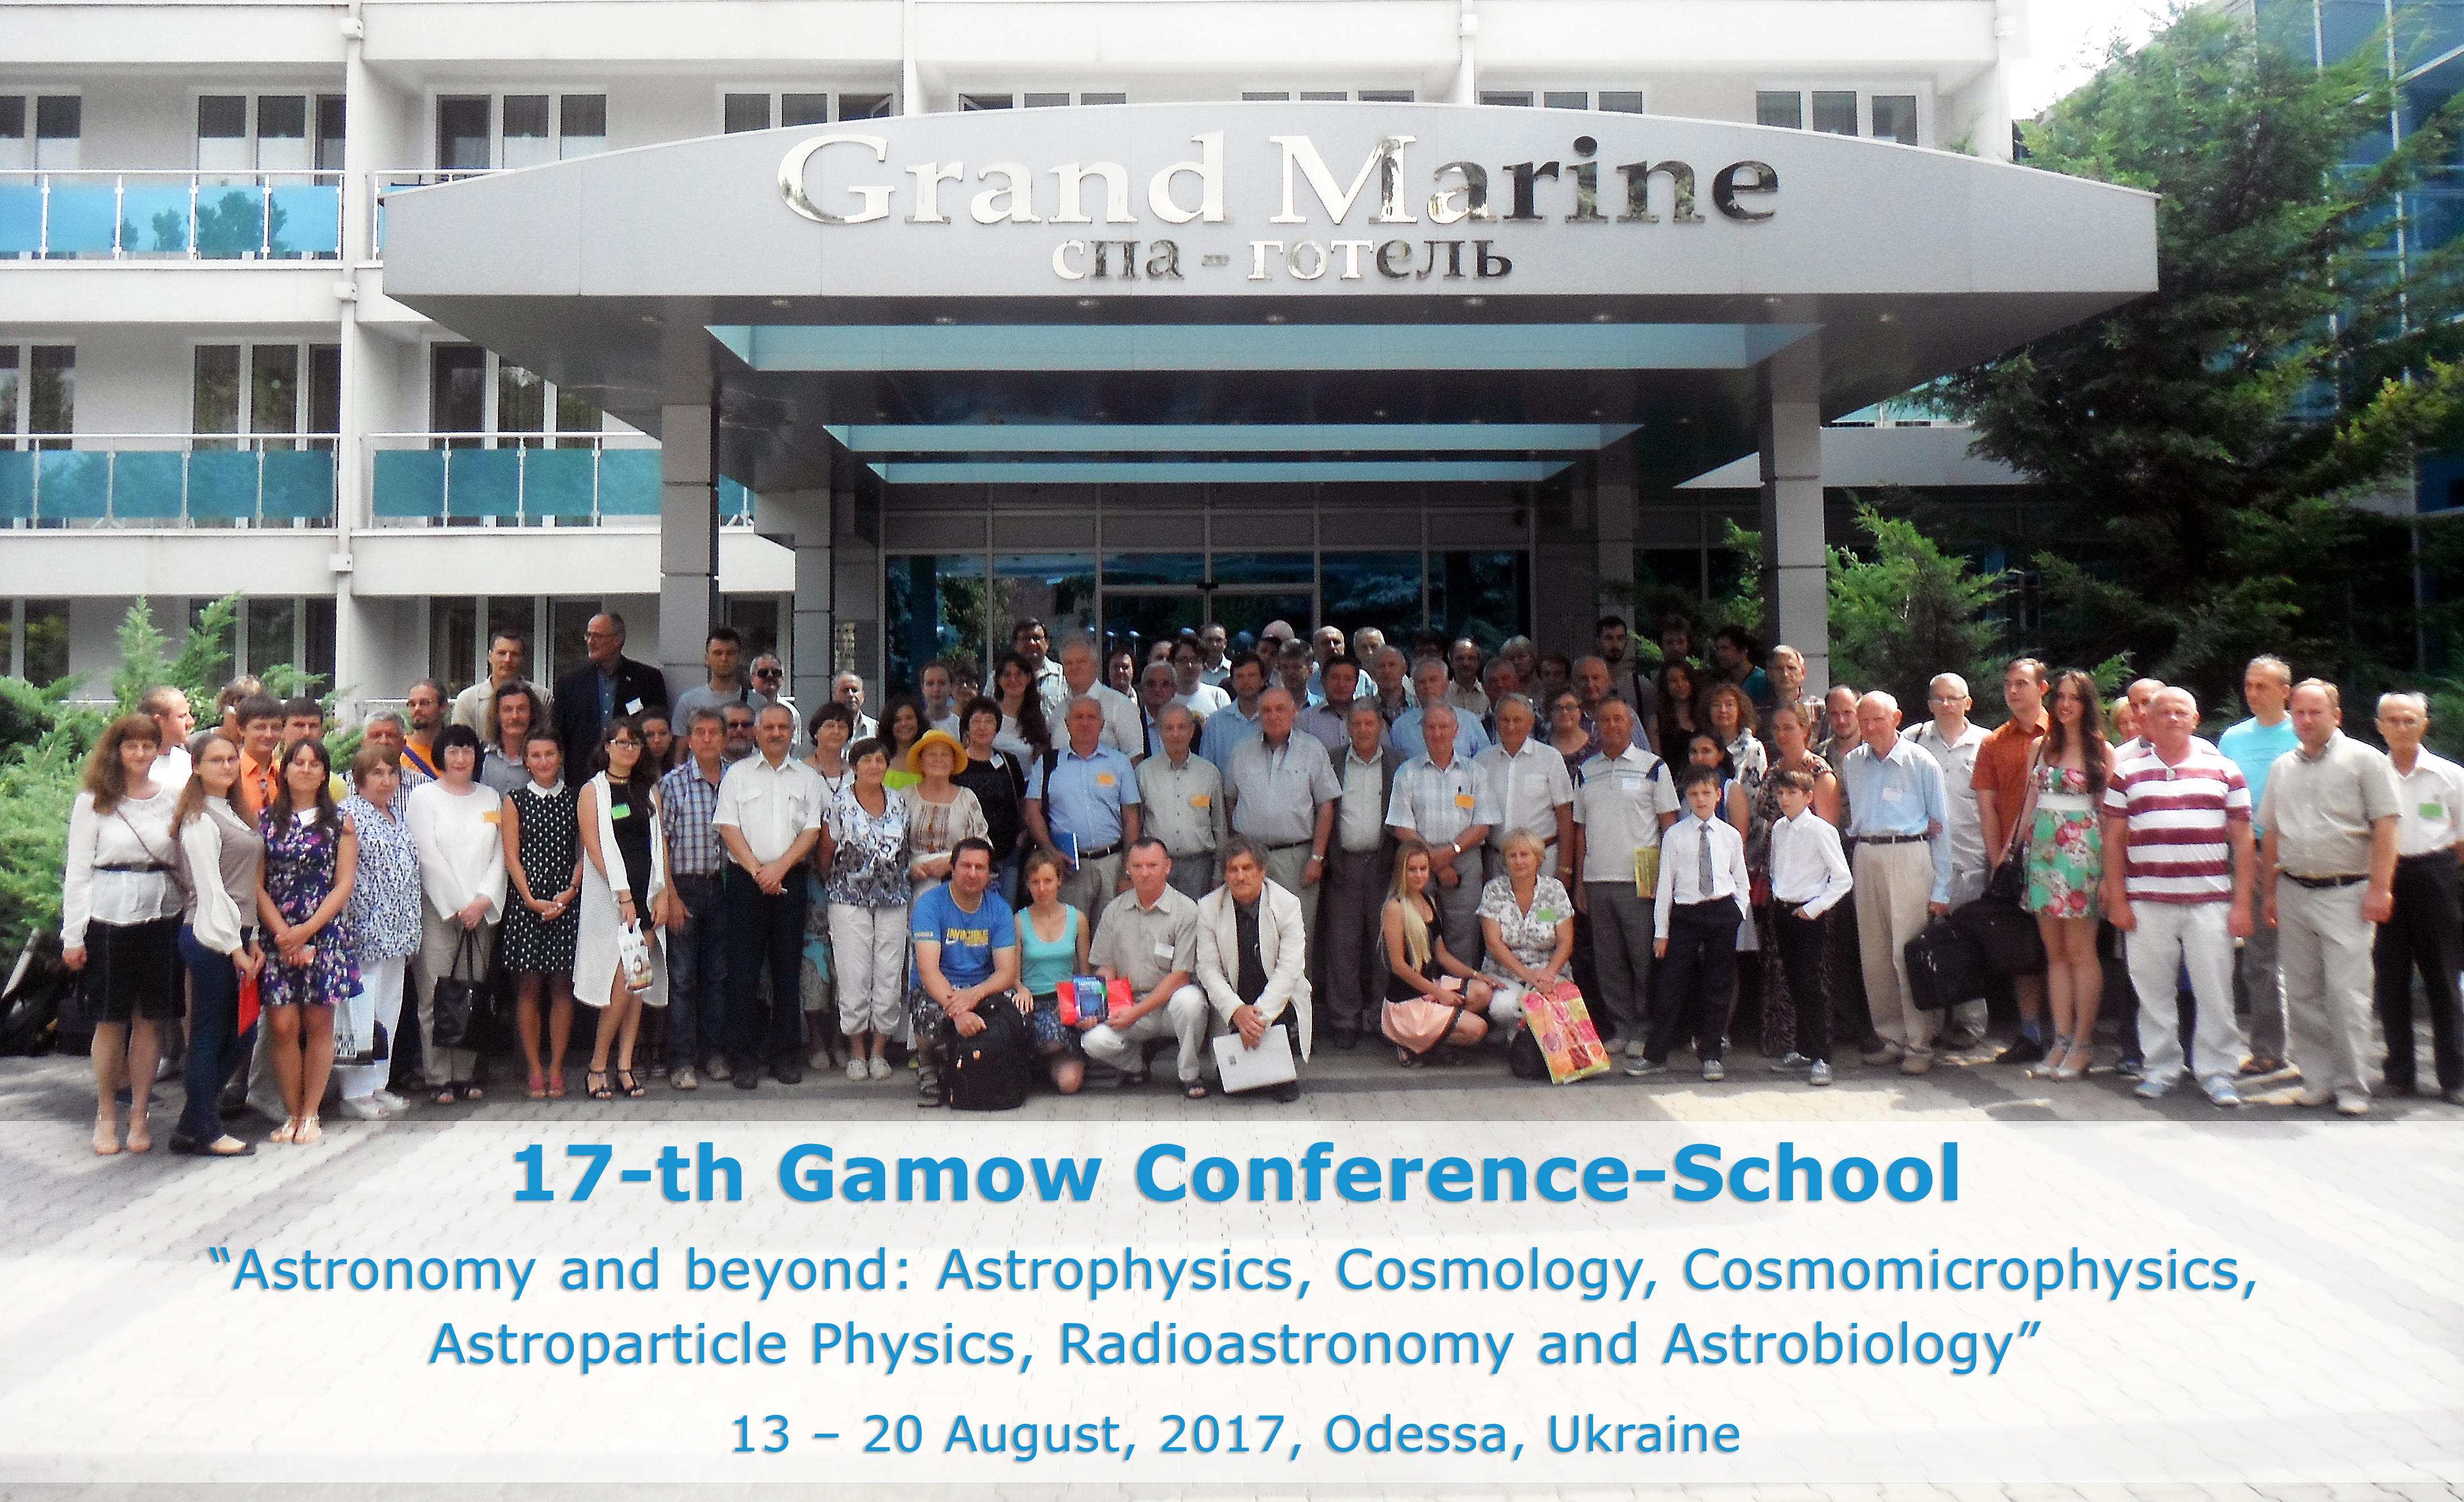 gamow conference photo 2017 odessa ukraine cosmology astronomy